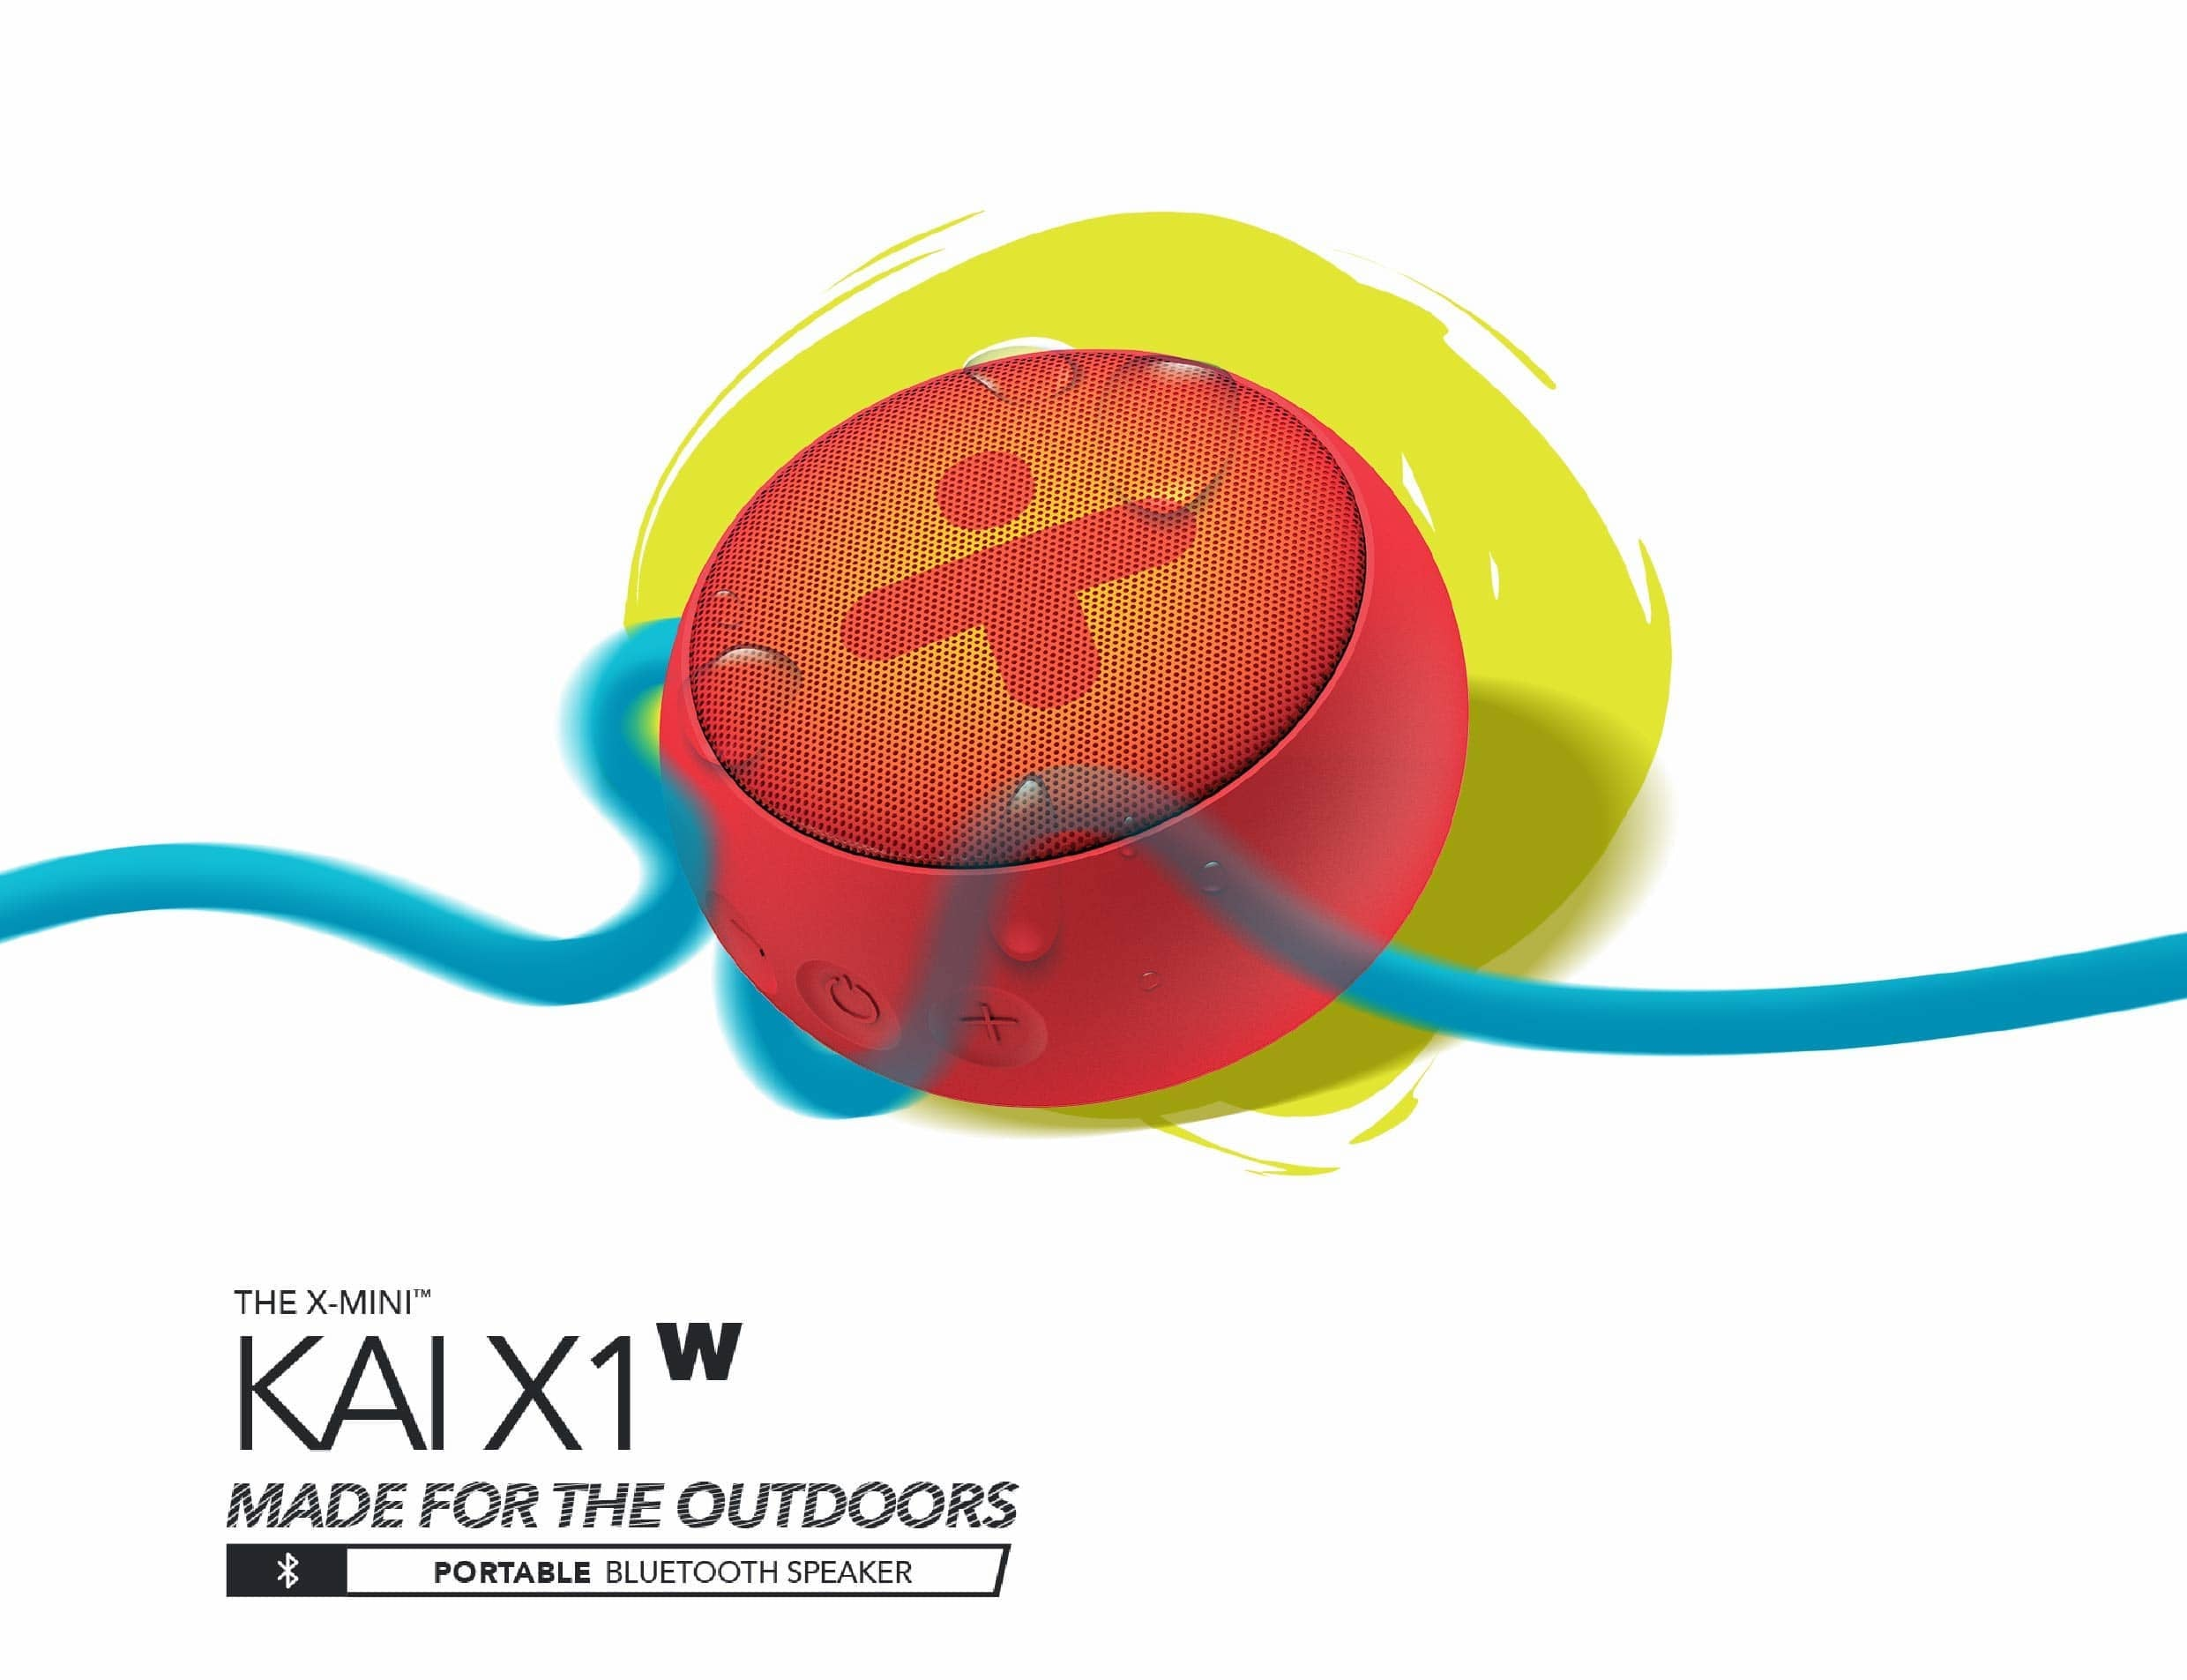 X-mini-Kai-X1-W-Waterproof-True-Wireless-Bluetooth-Portable-Speaker